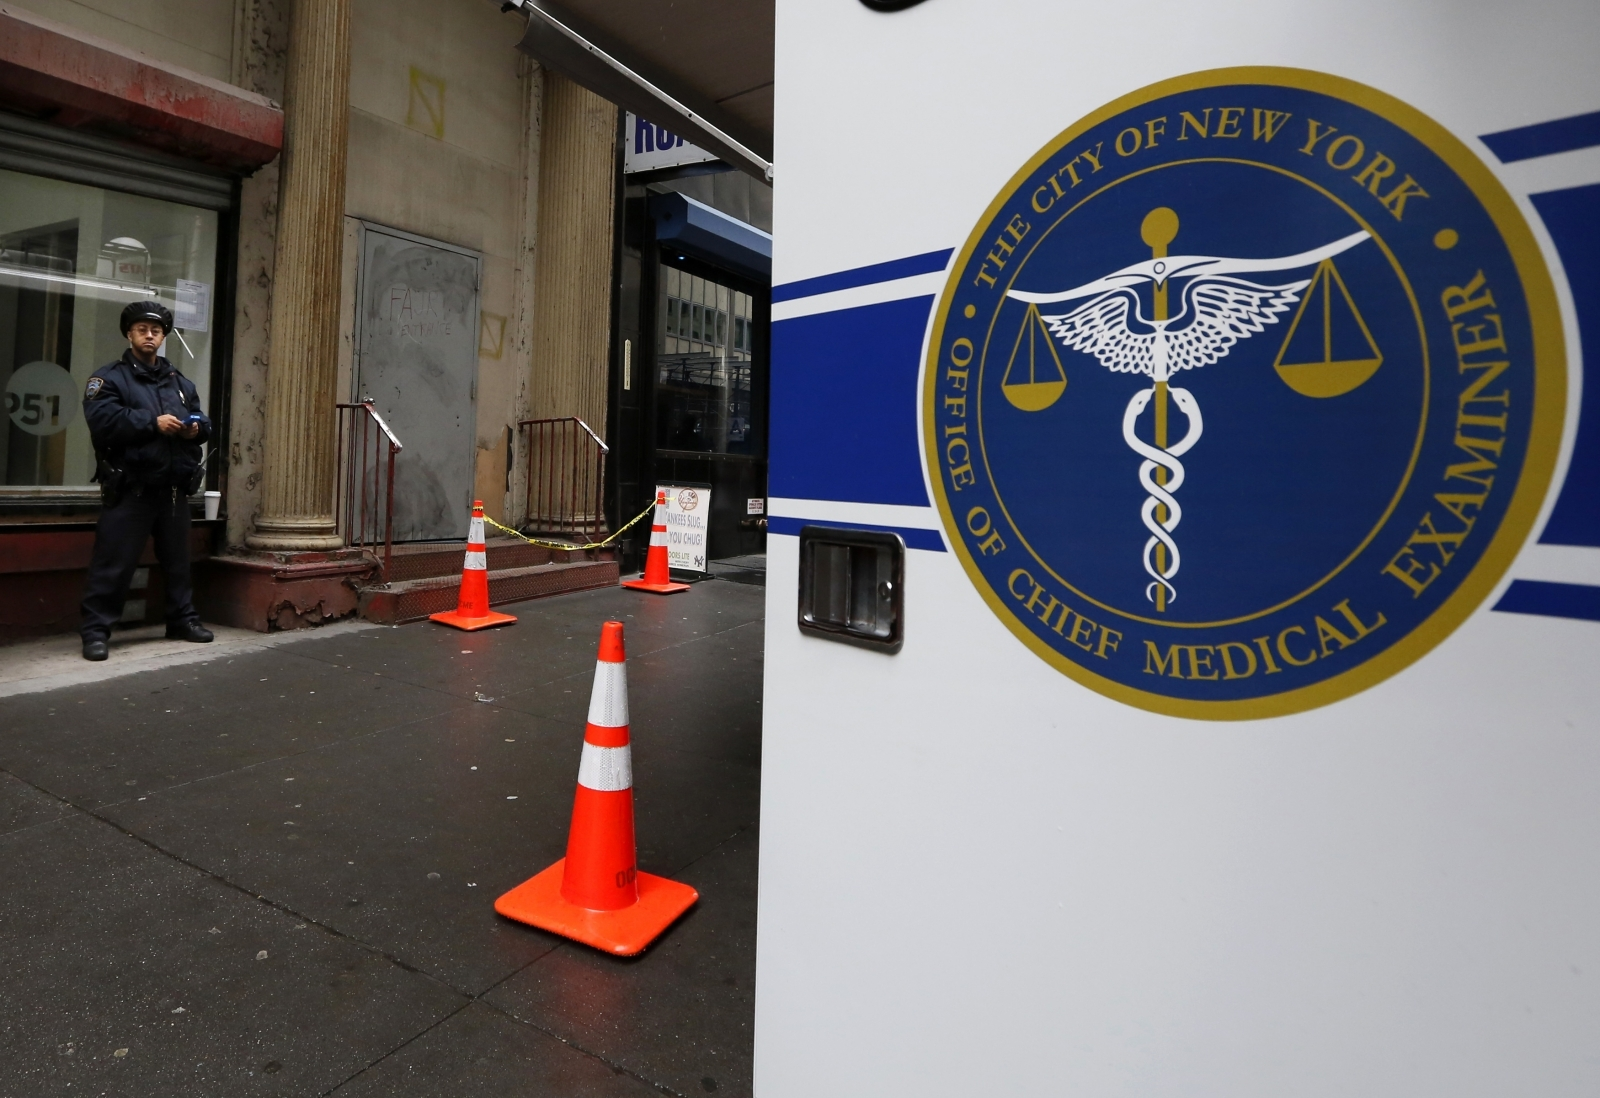 Office of Chief Medical Examiner